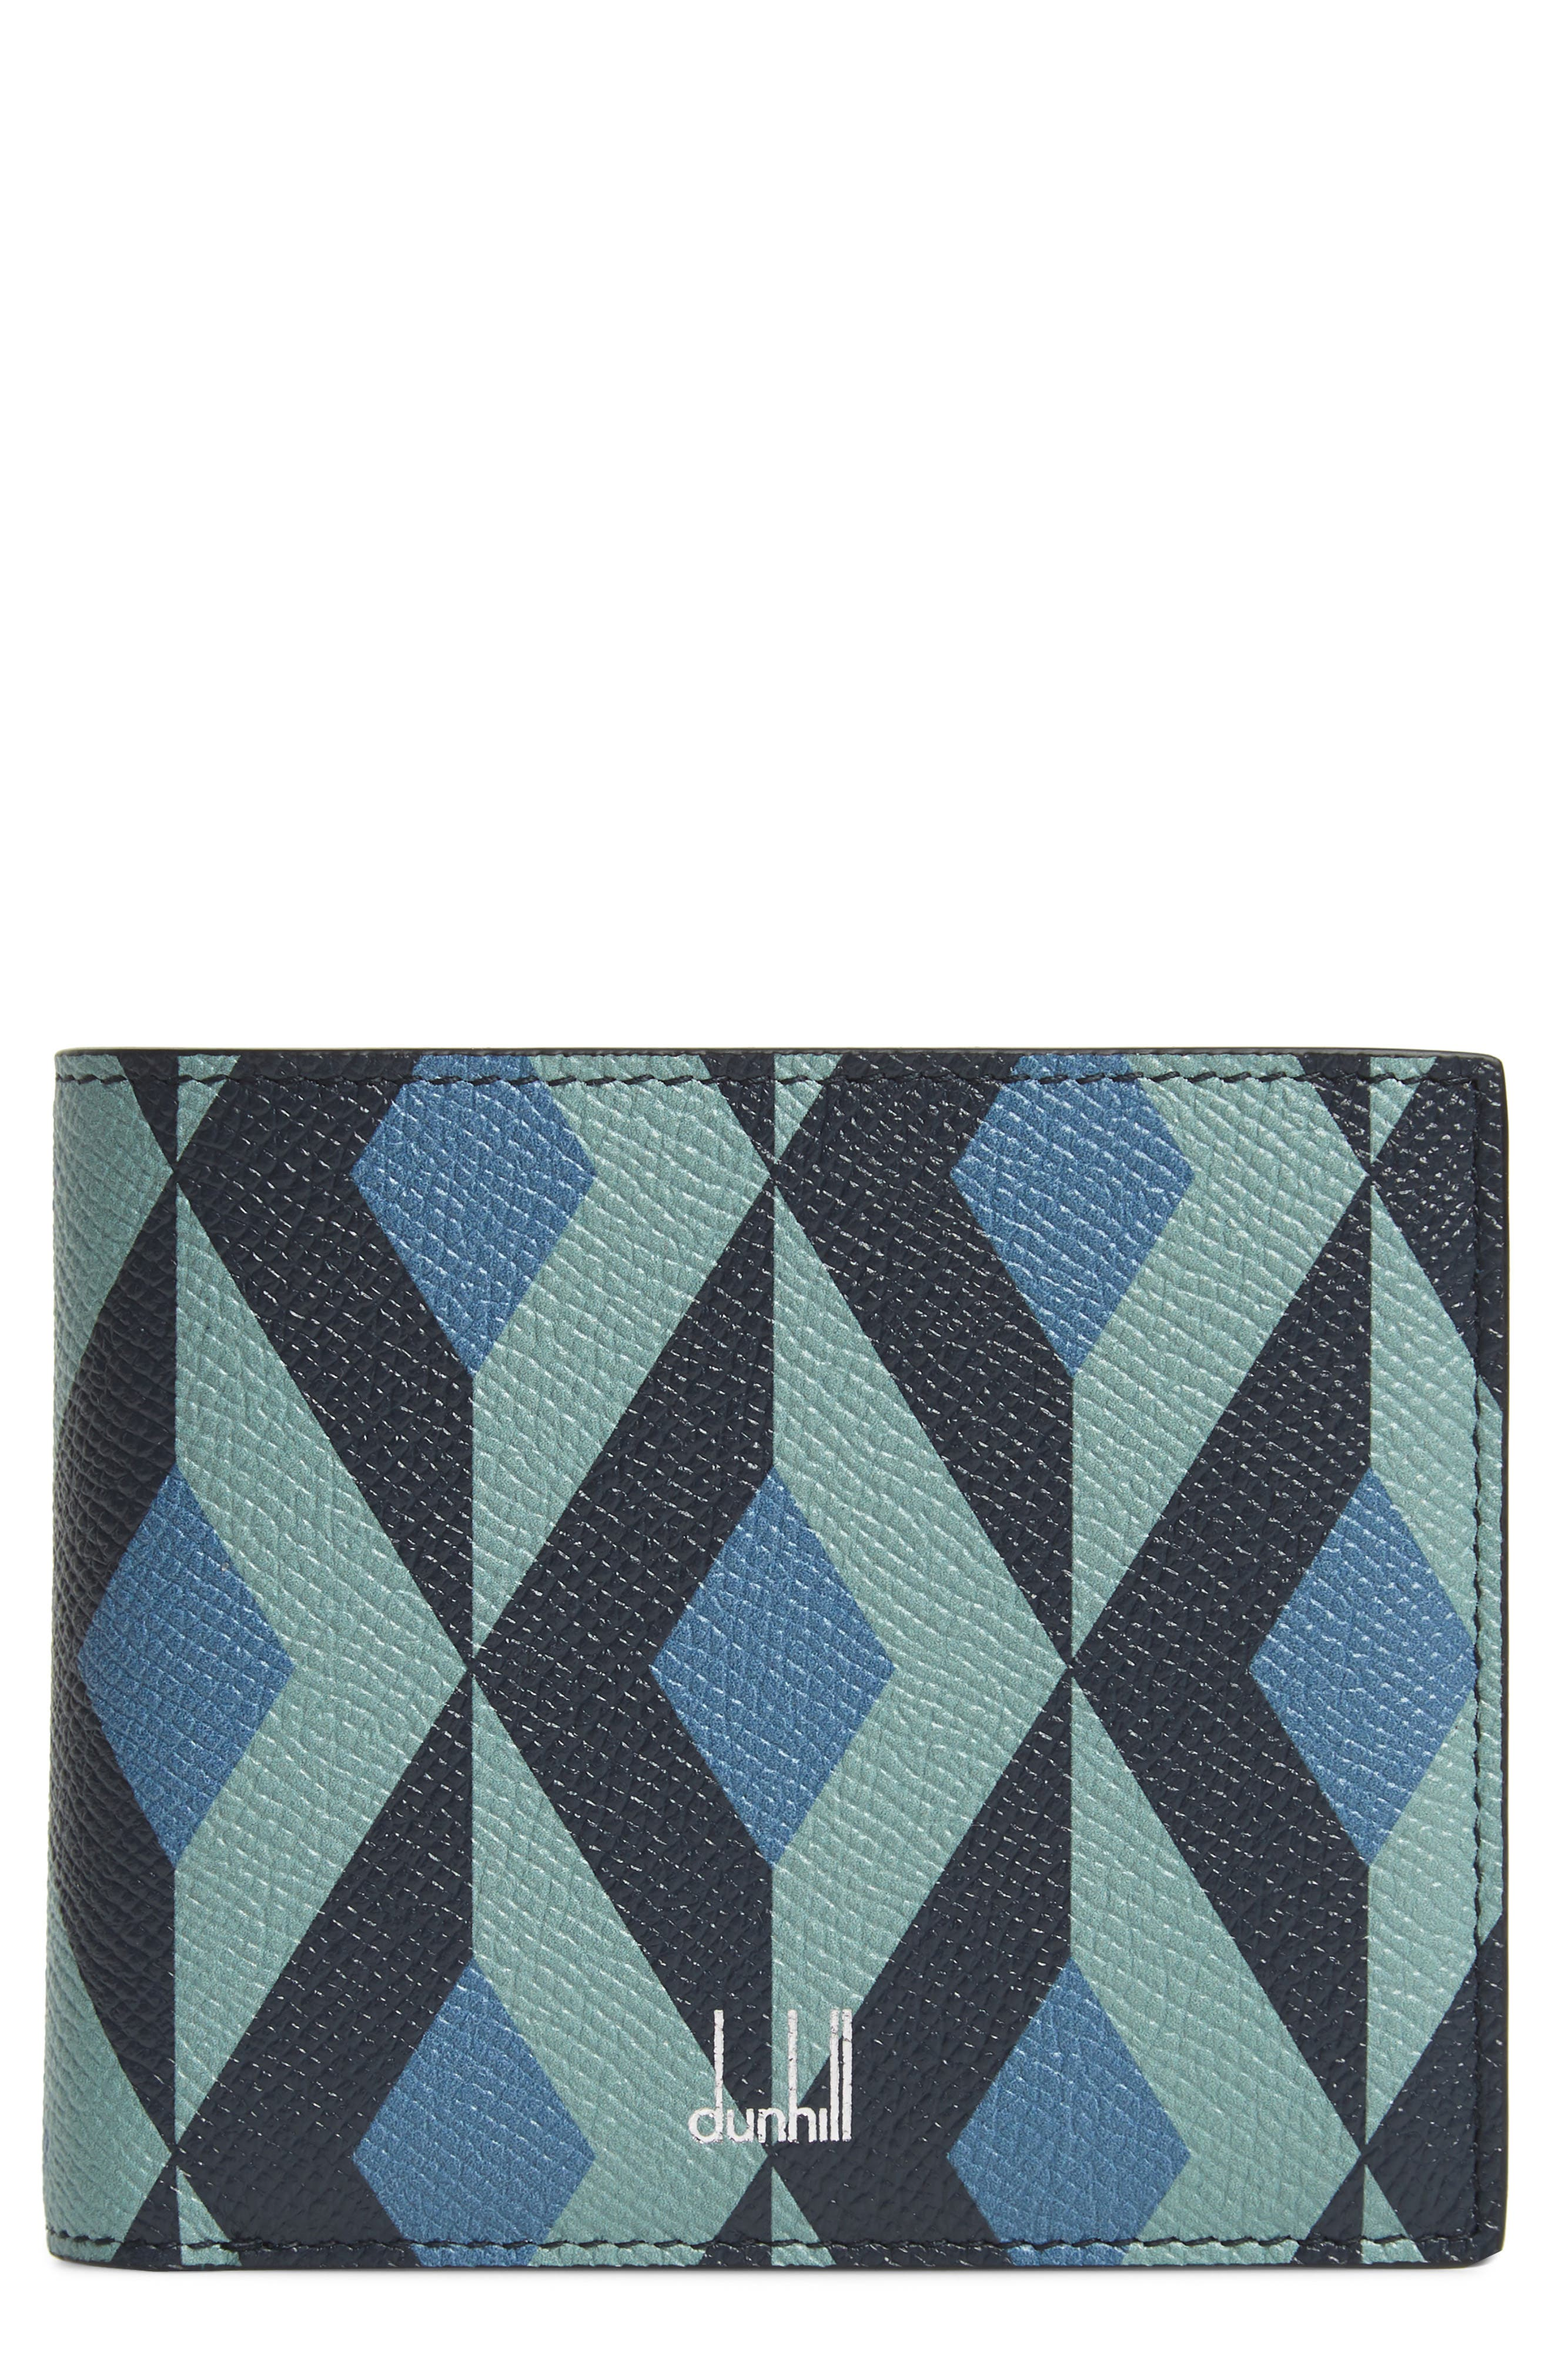 Dunhill Cadogan Leather Wallet - Blue